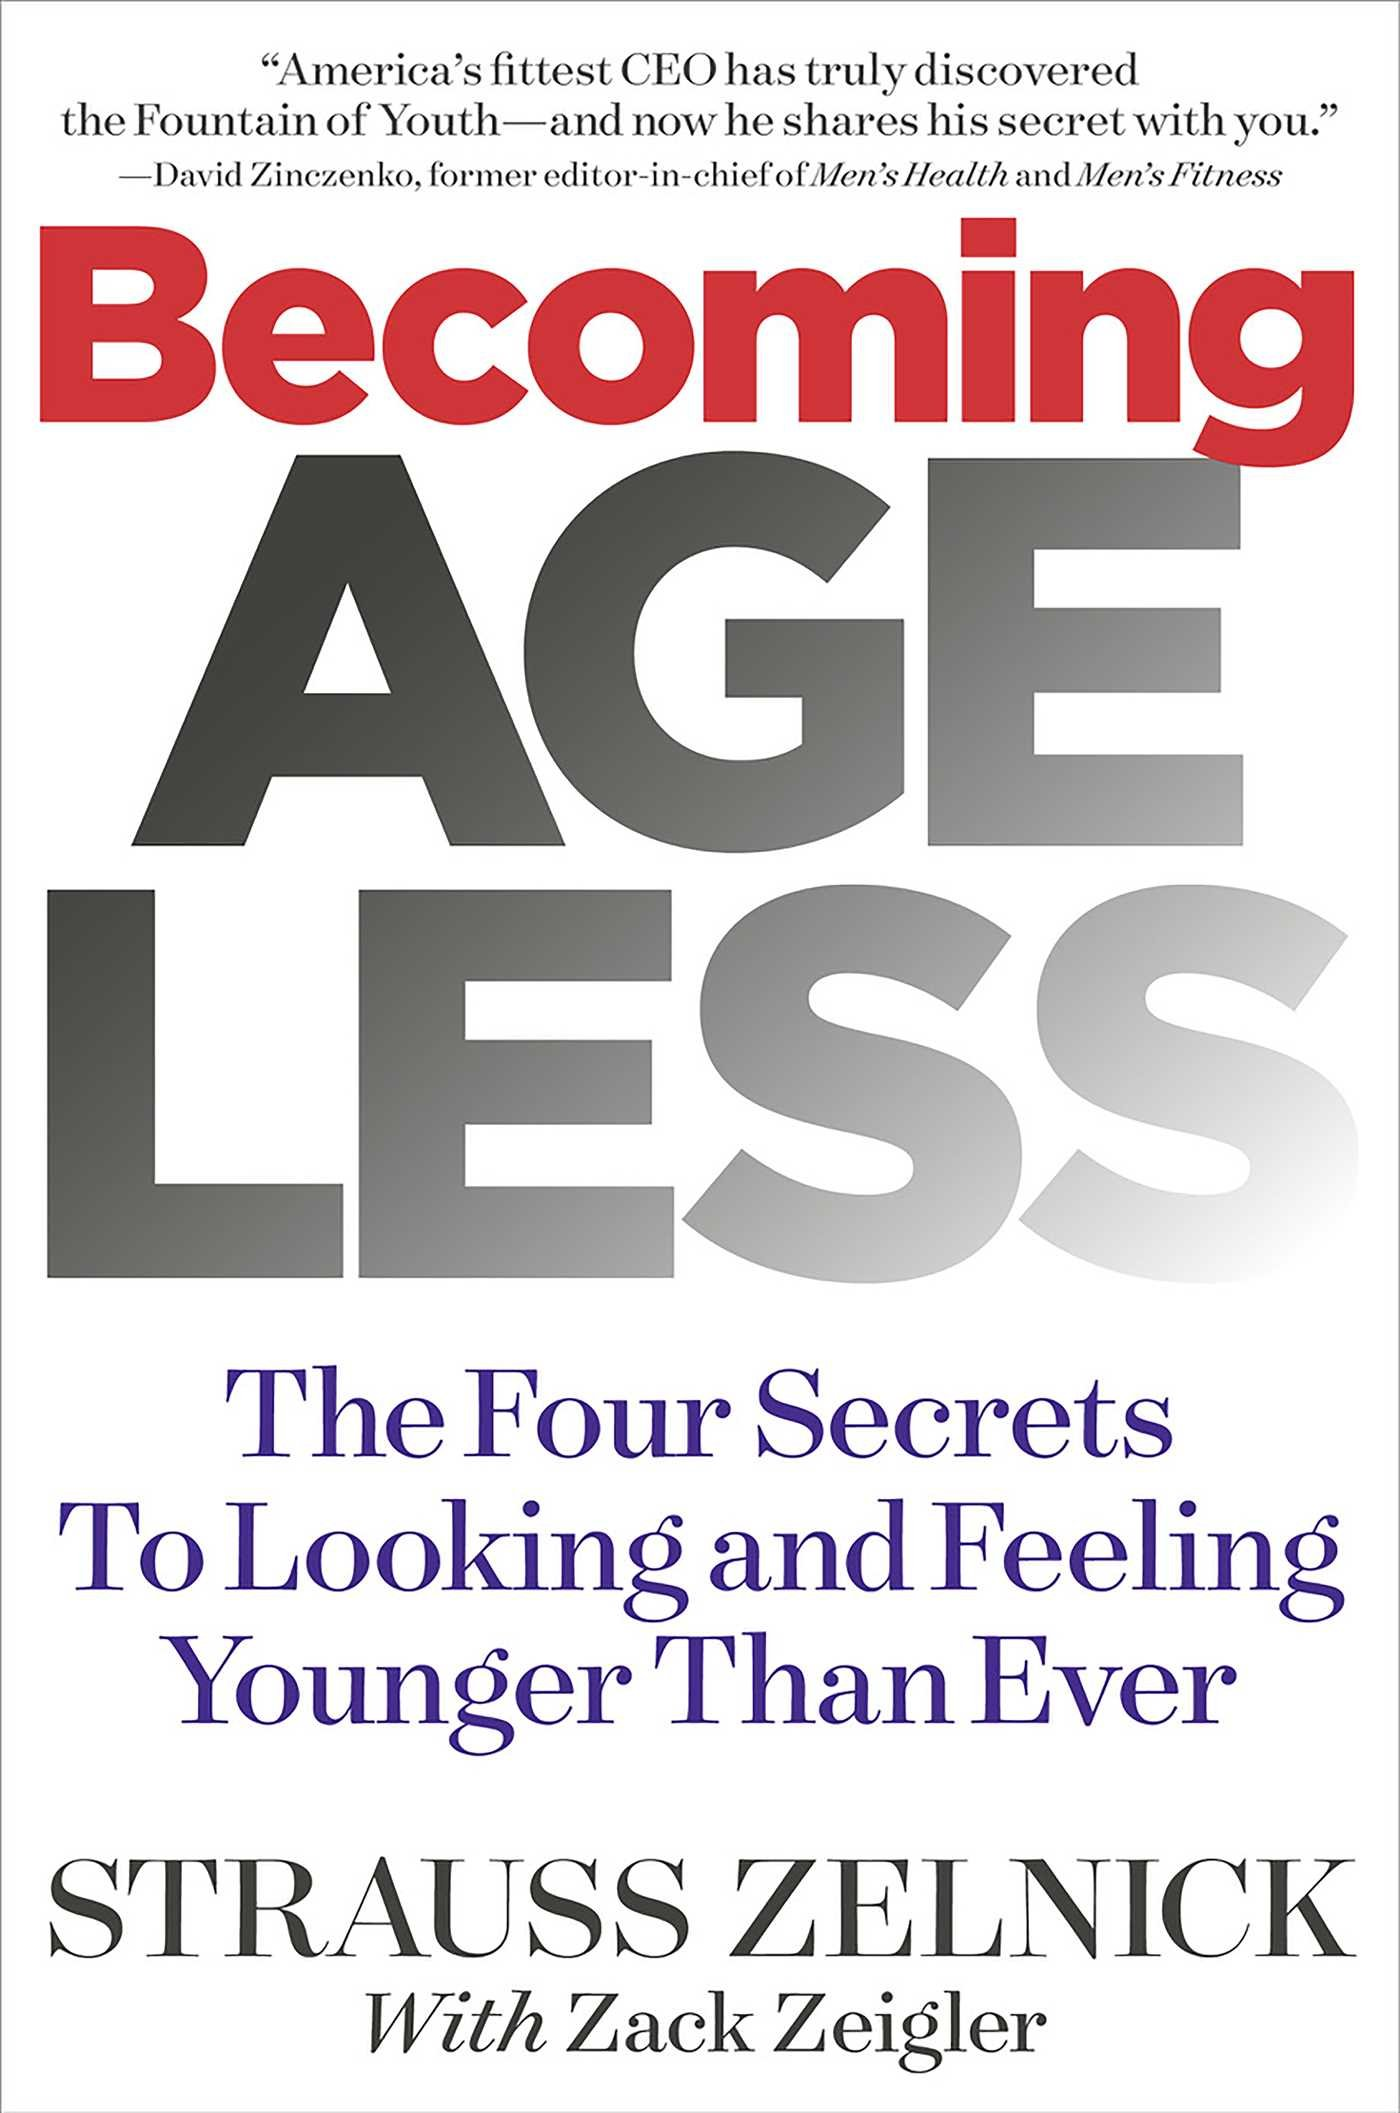 Becoming Ageless  - Strauss Zelnick